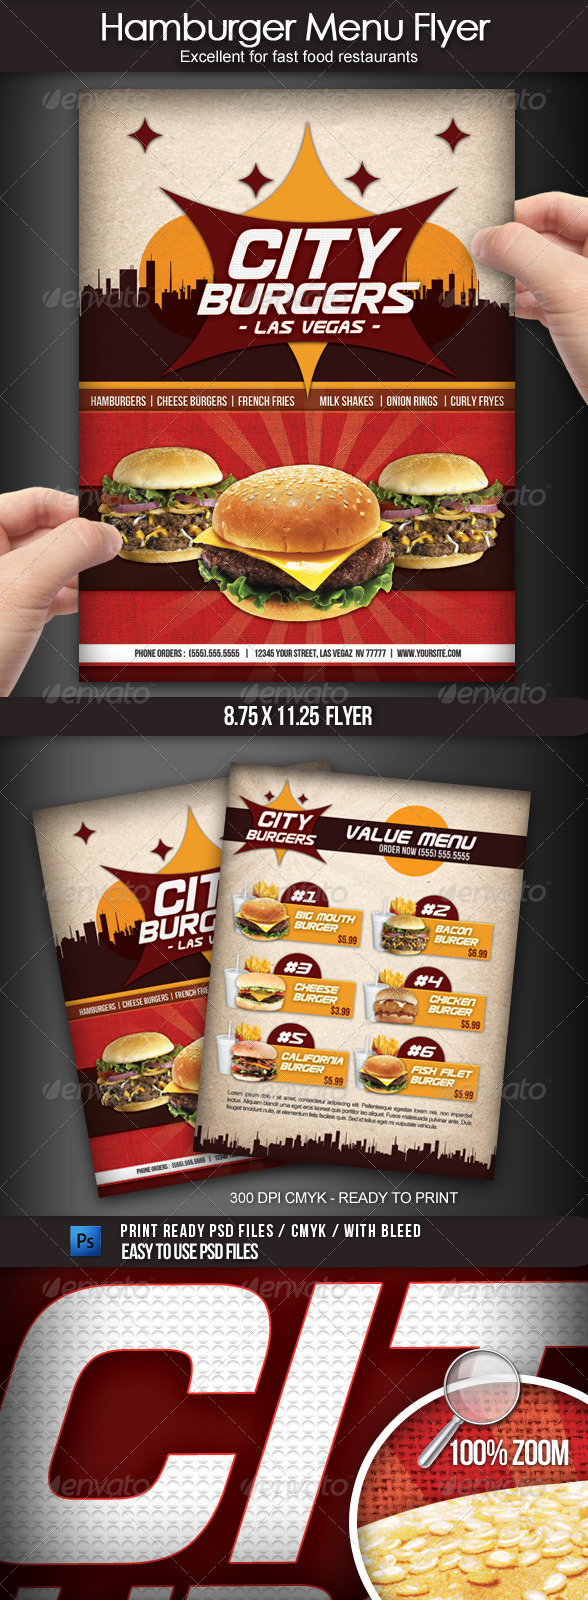 GraphicRiver Hamburger Restaurant Menu Flyer 2092834